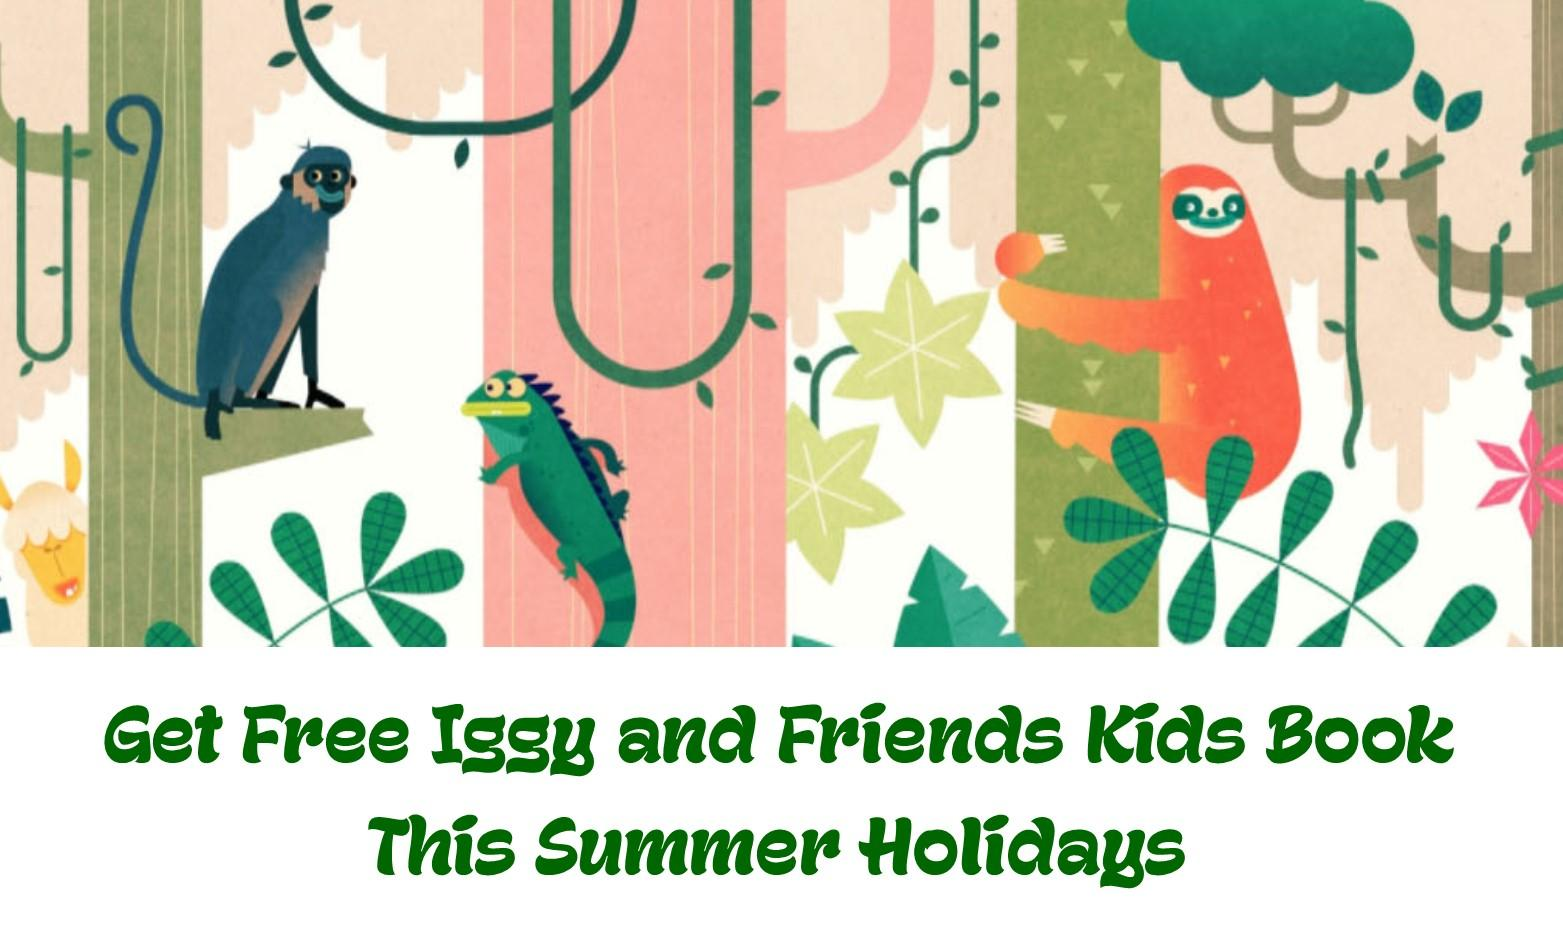 Get Free Kids Book this Summer Holidays at Las Iguanas